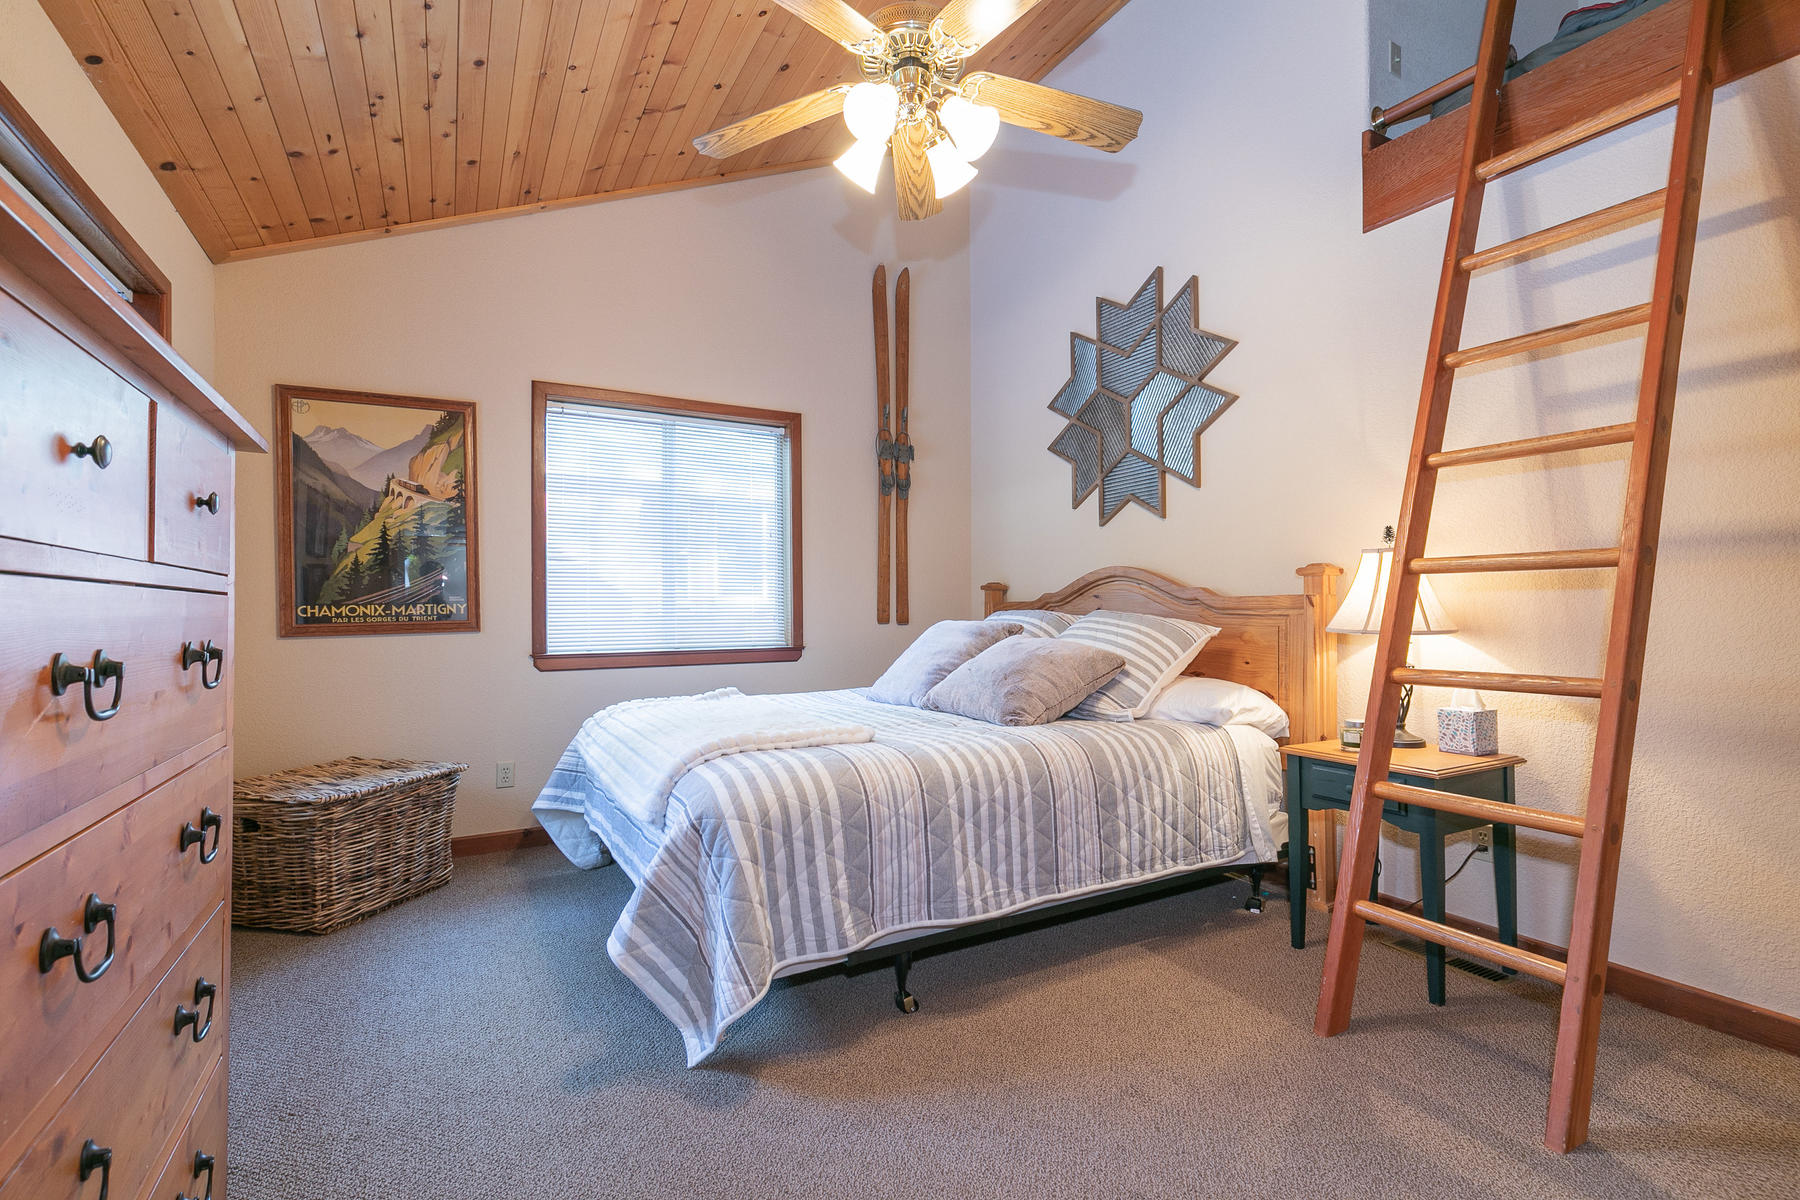 Additional photo for property listing at 12016 Lausanne Way Truckee, California 96161 United States